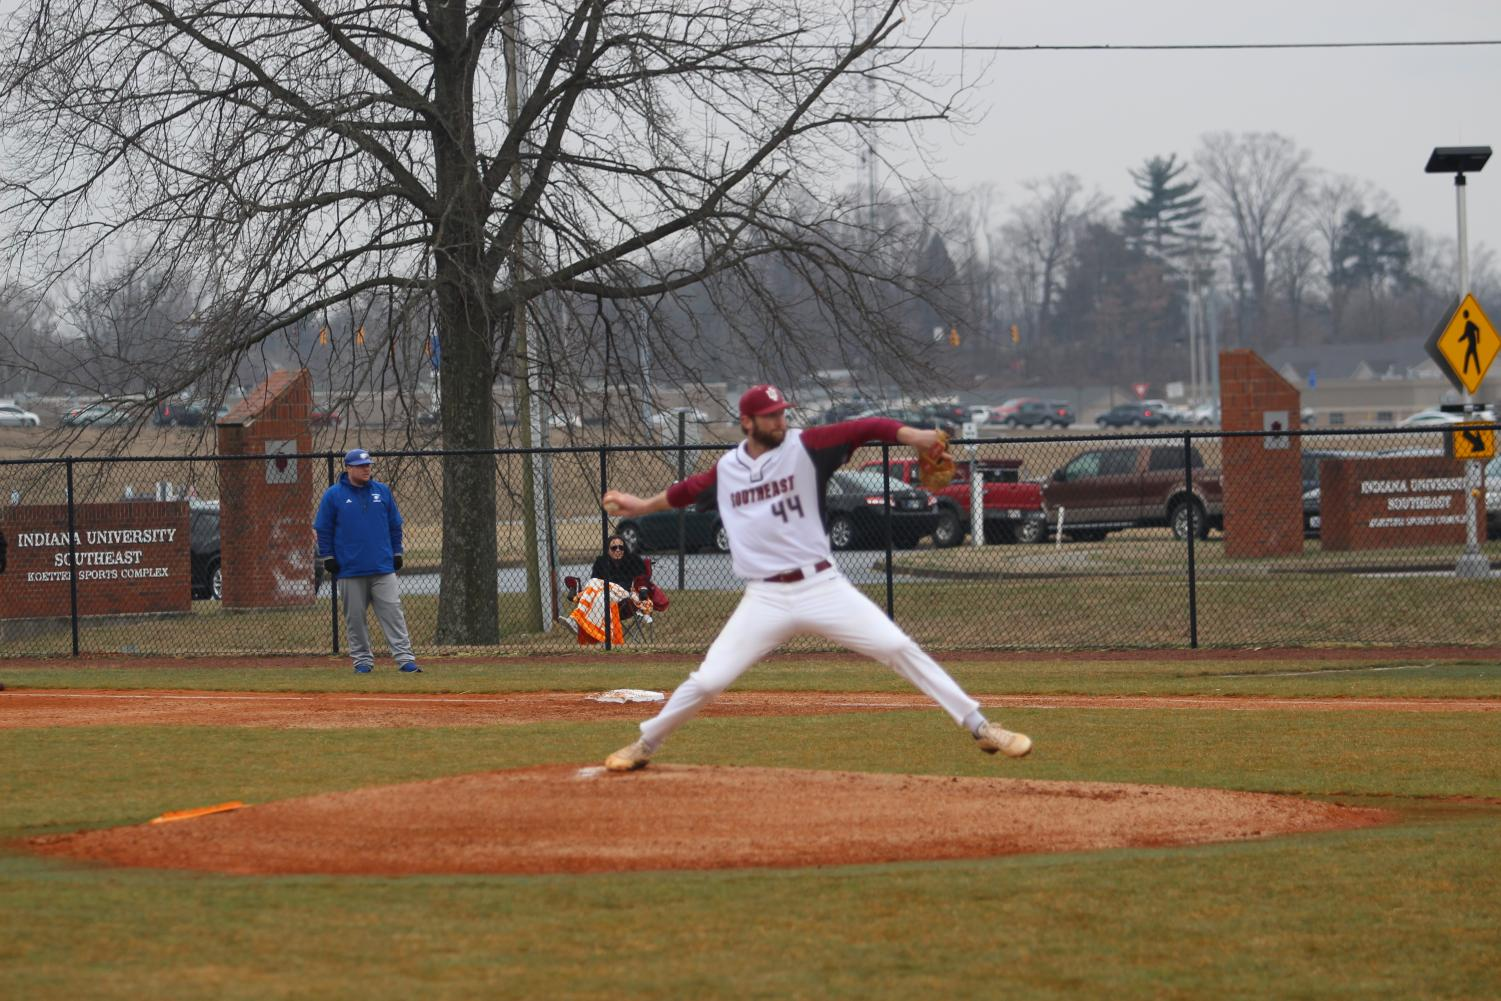 IUS right-hander Jack Wohlert fires a pitch for a strike in the first inning of last Thursday's game versus Midway. Photo by Brandon Miniard.